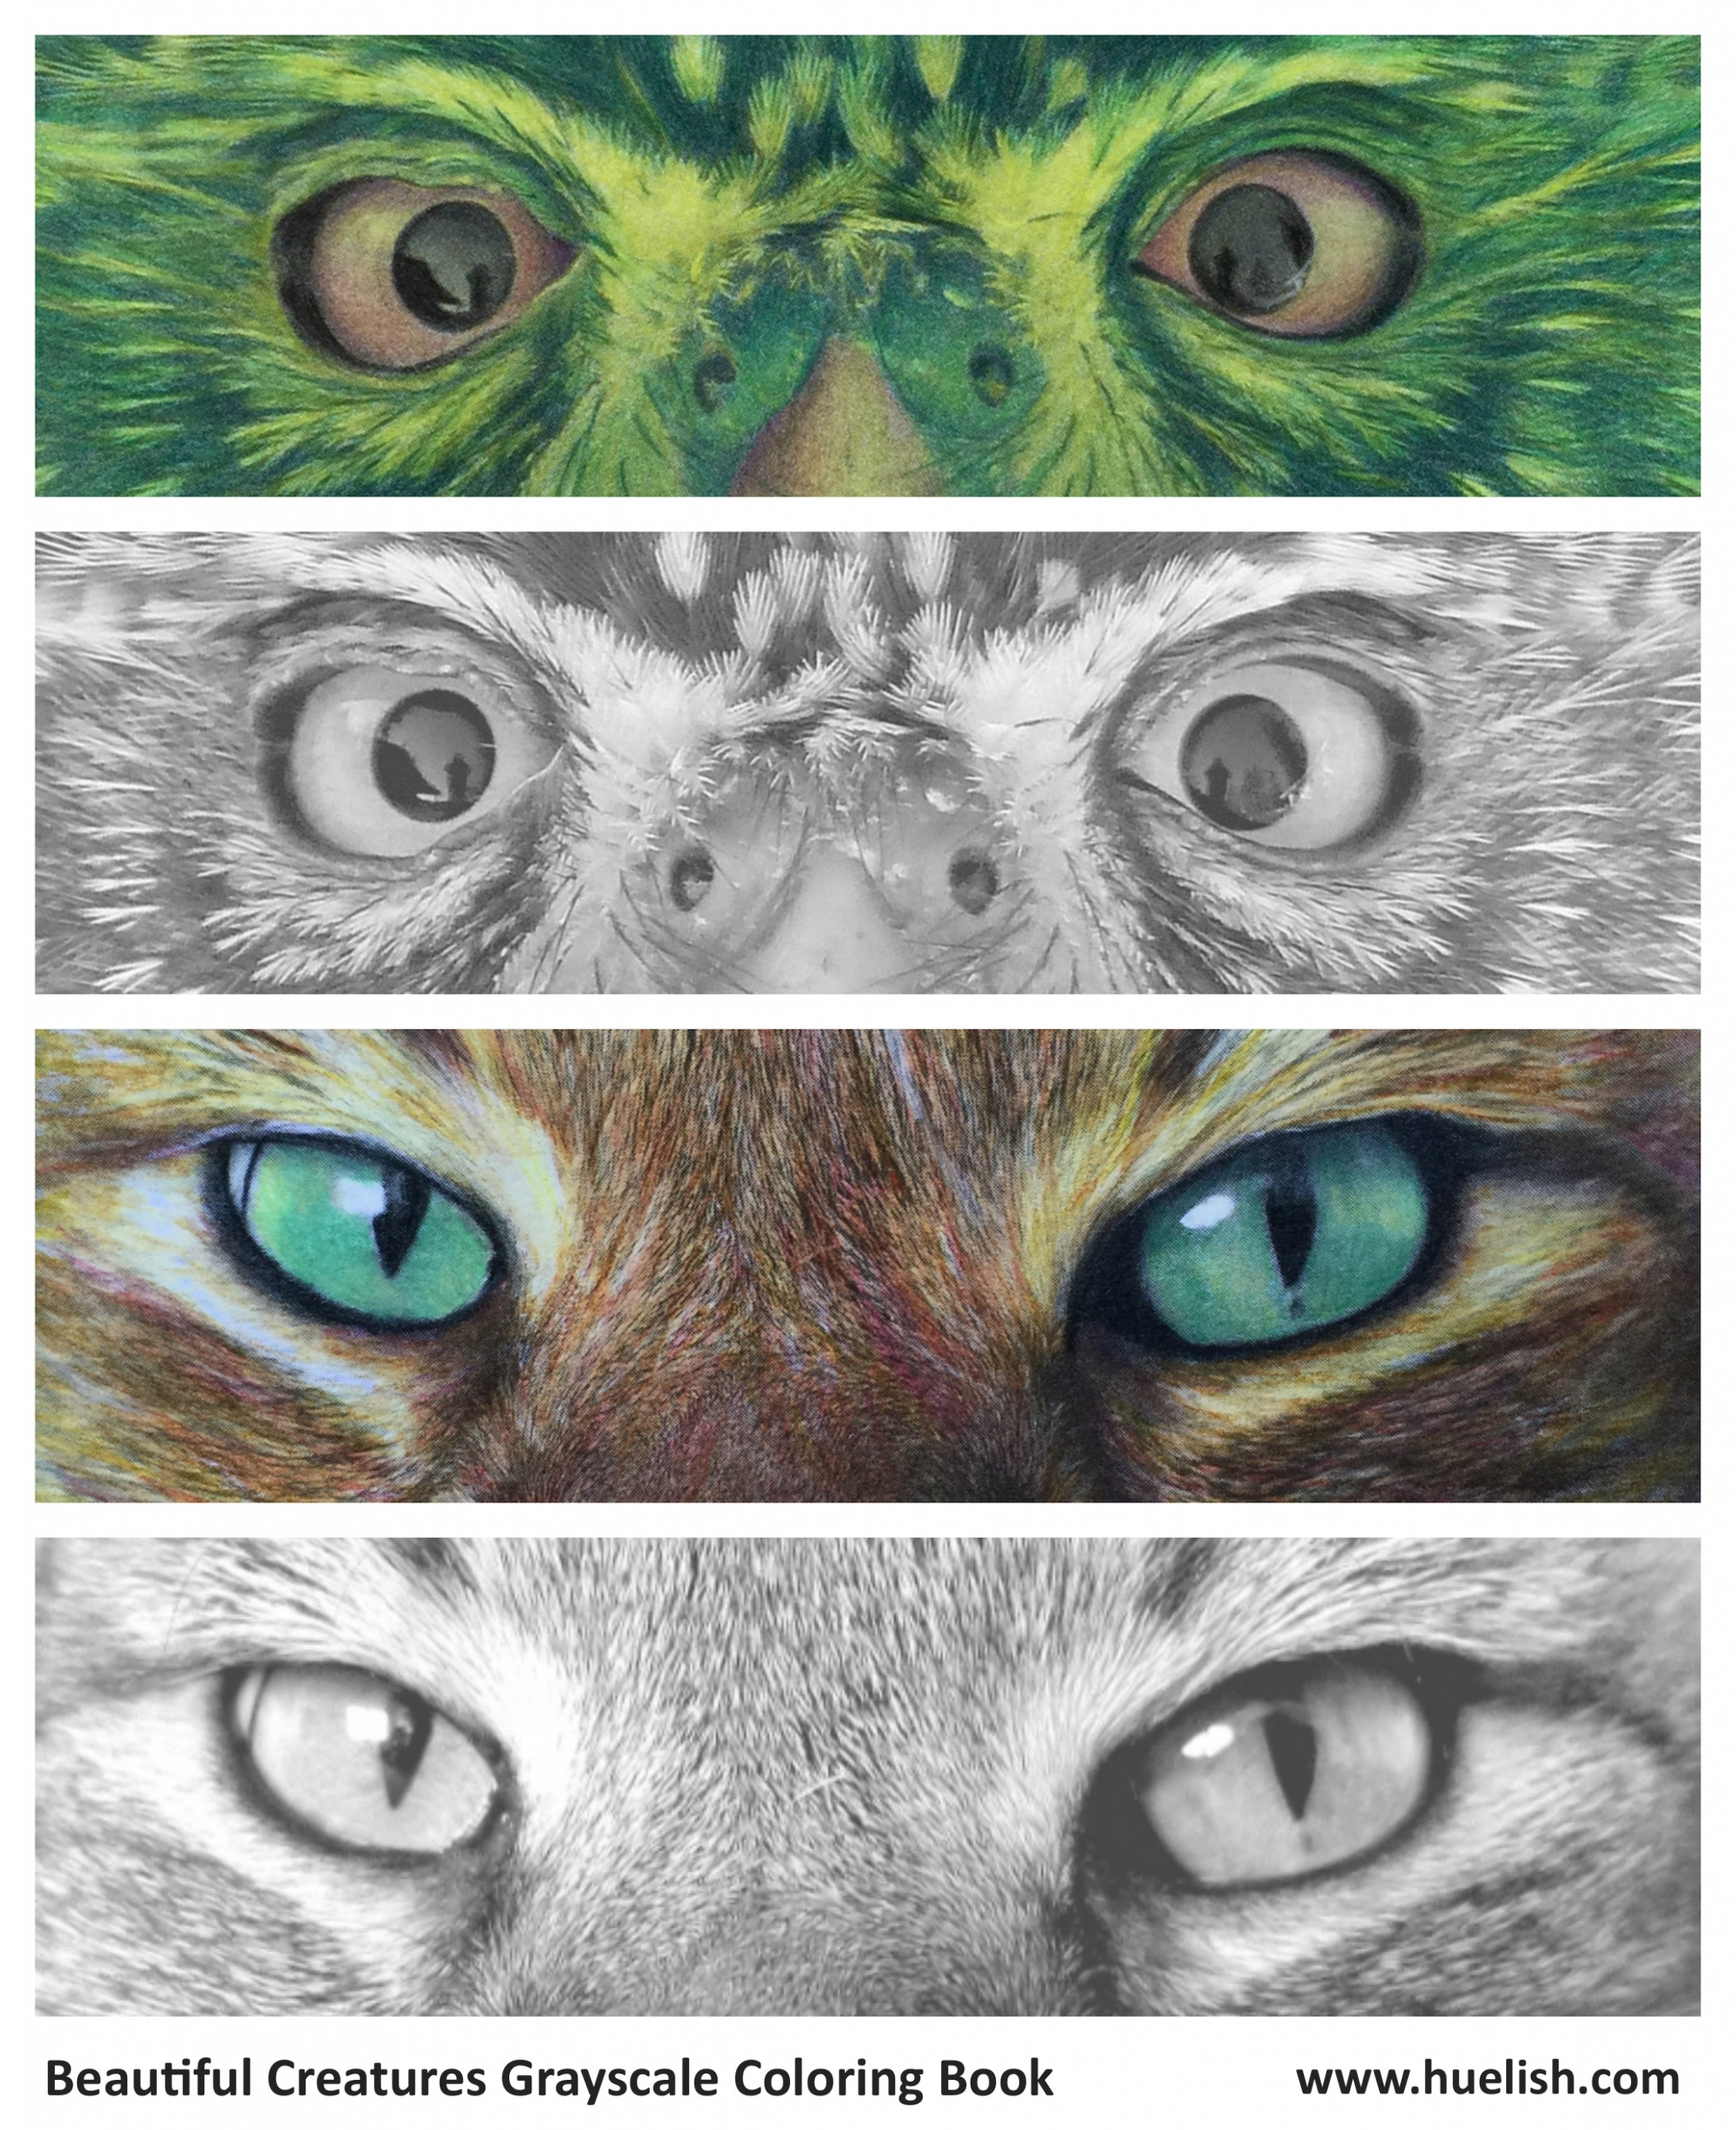 Huelish Grayscale Adult Coloring Books – How to Color Grayscale ..